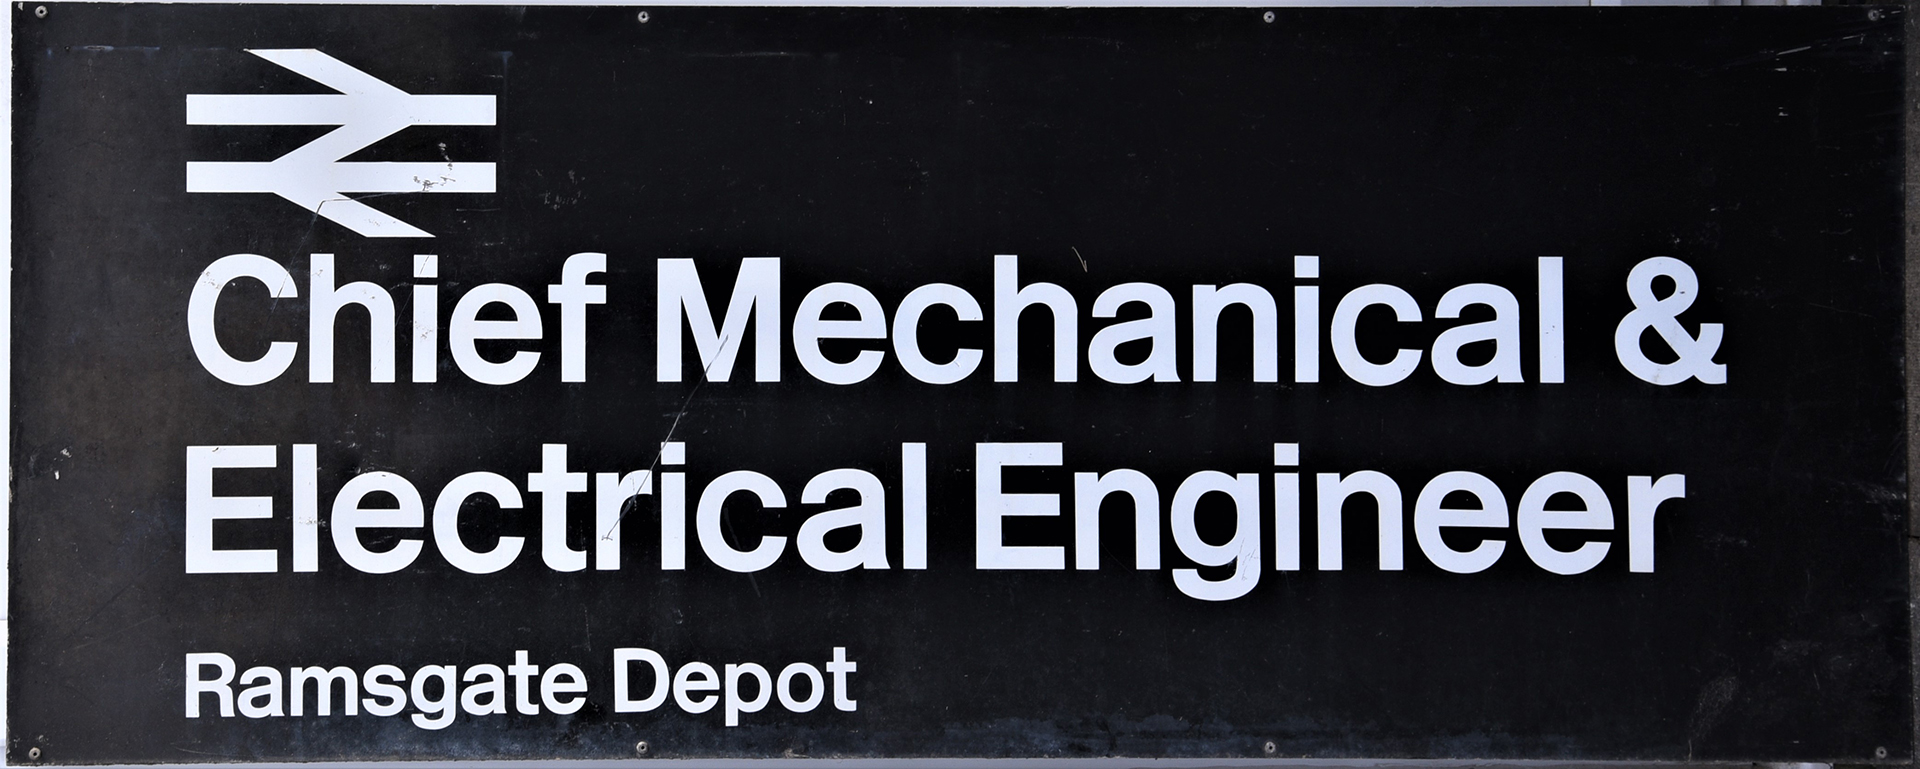 Modern image railway sign. CHIEF MECHANICAL and ELECTRICAL ENGINEER RAMSGATE DEPOT.